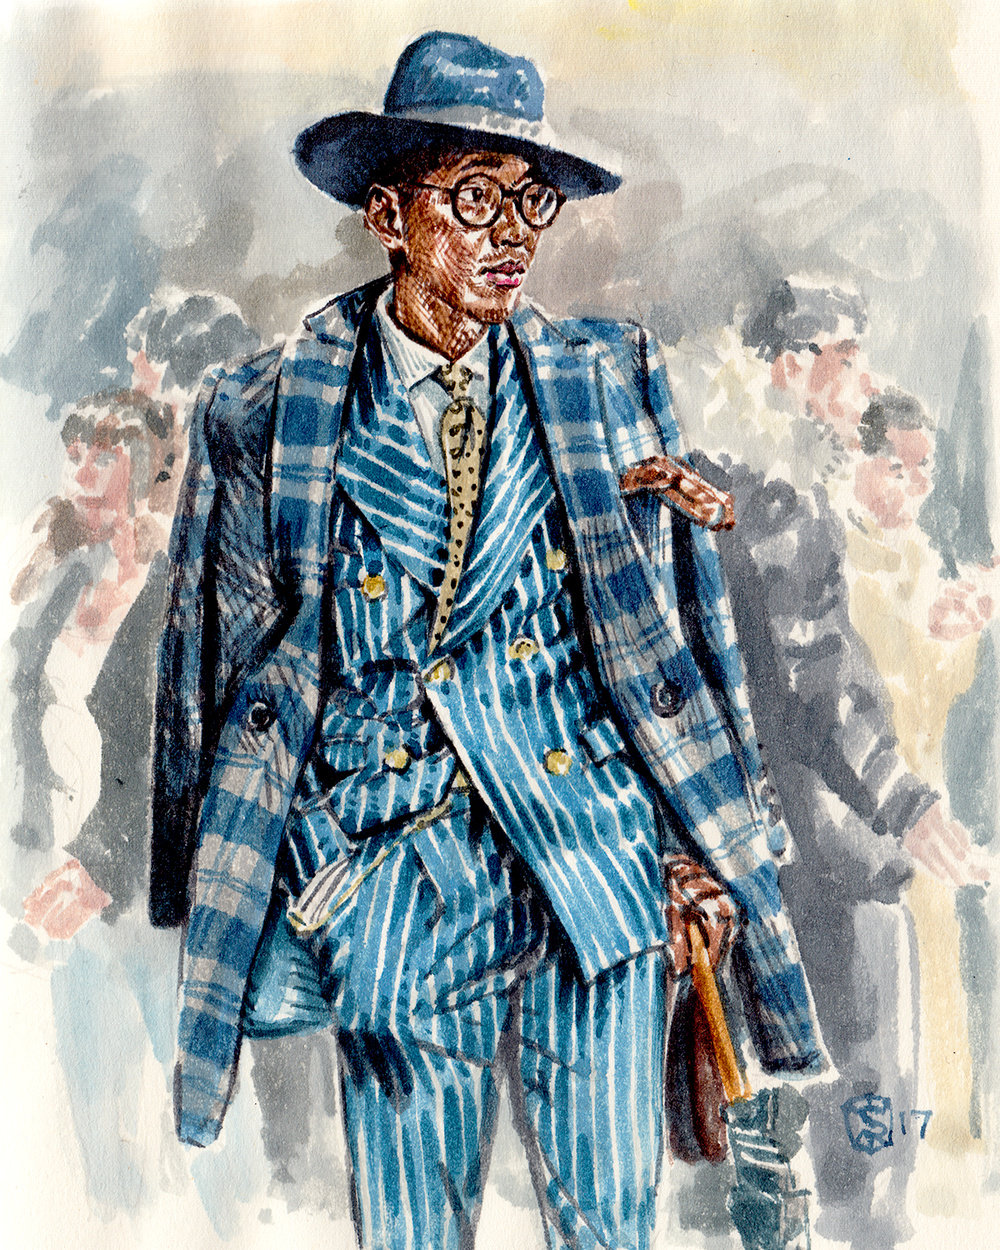 Men's fashion illustration of Brian Lehang